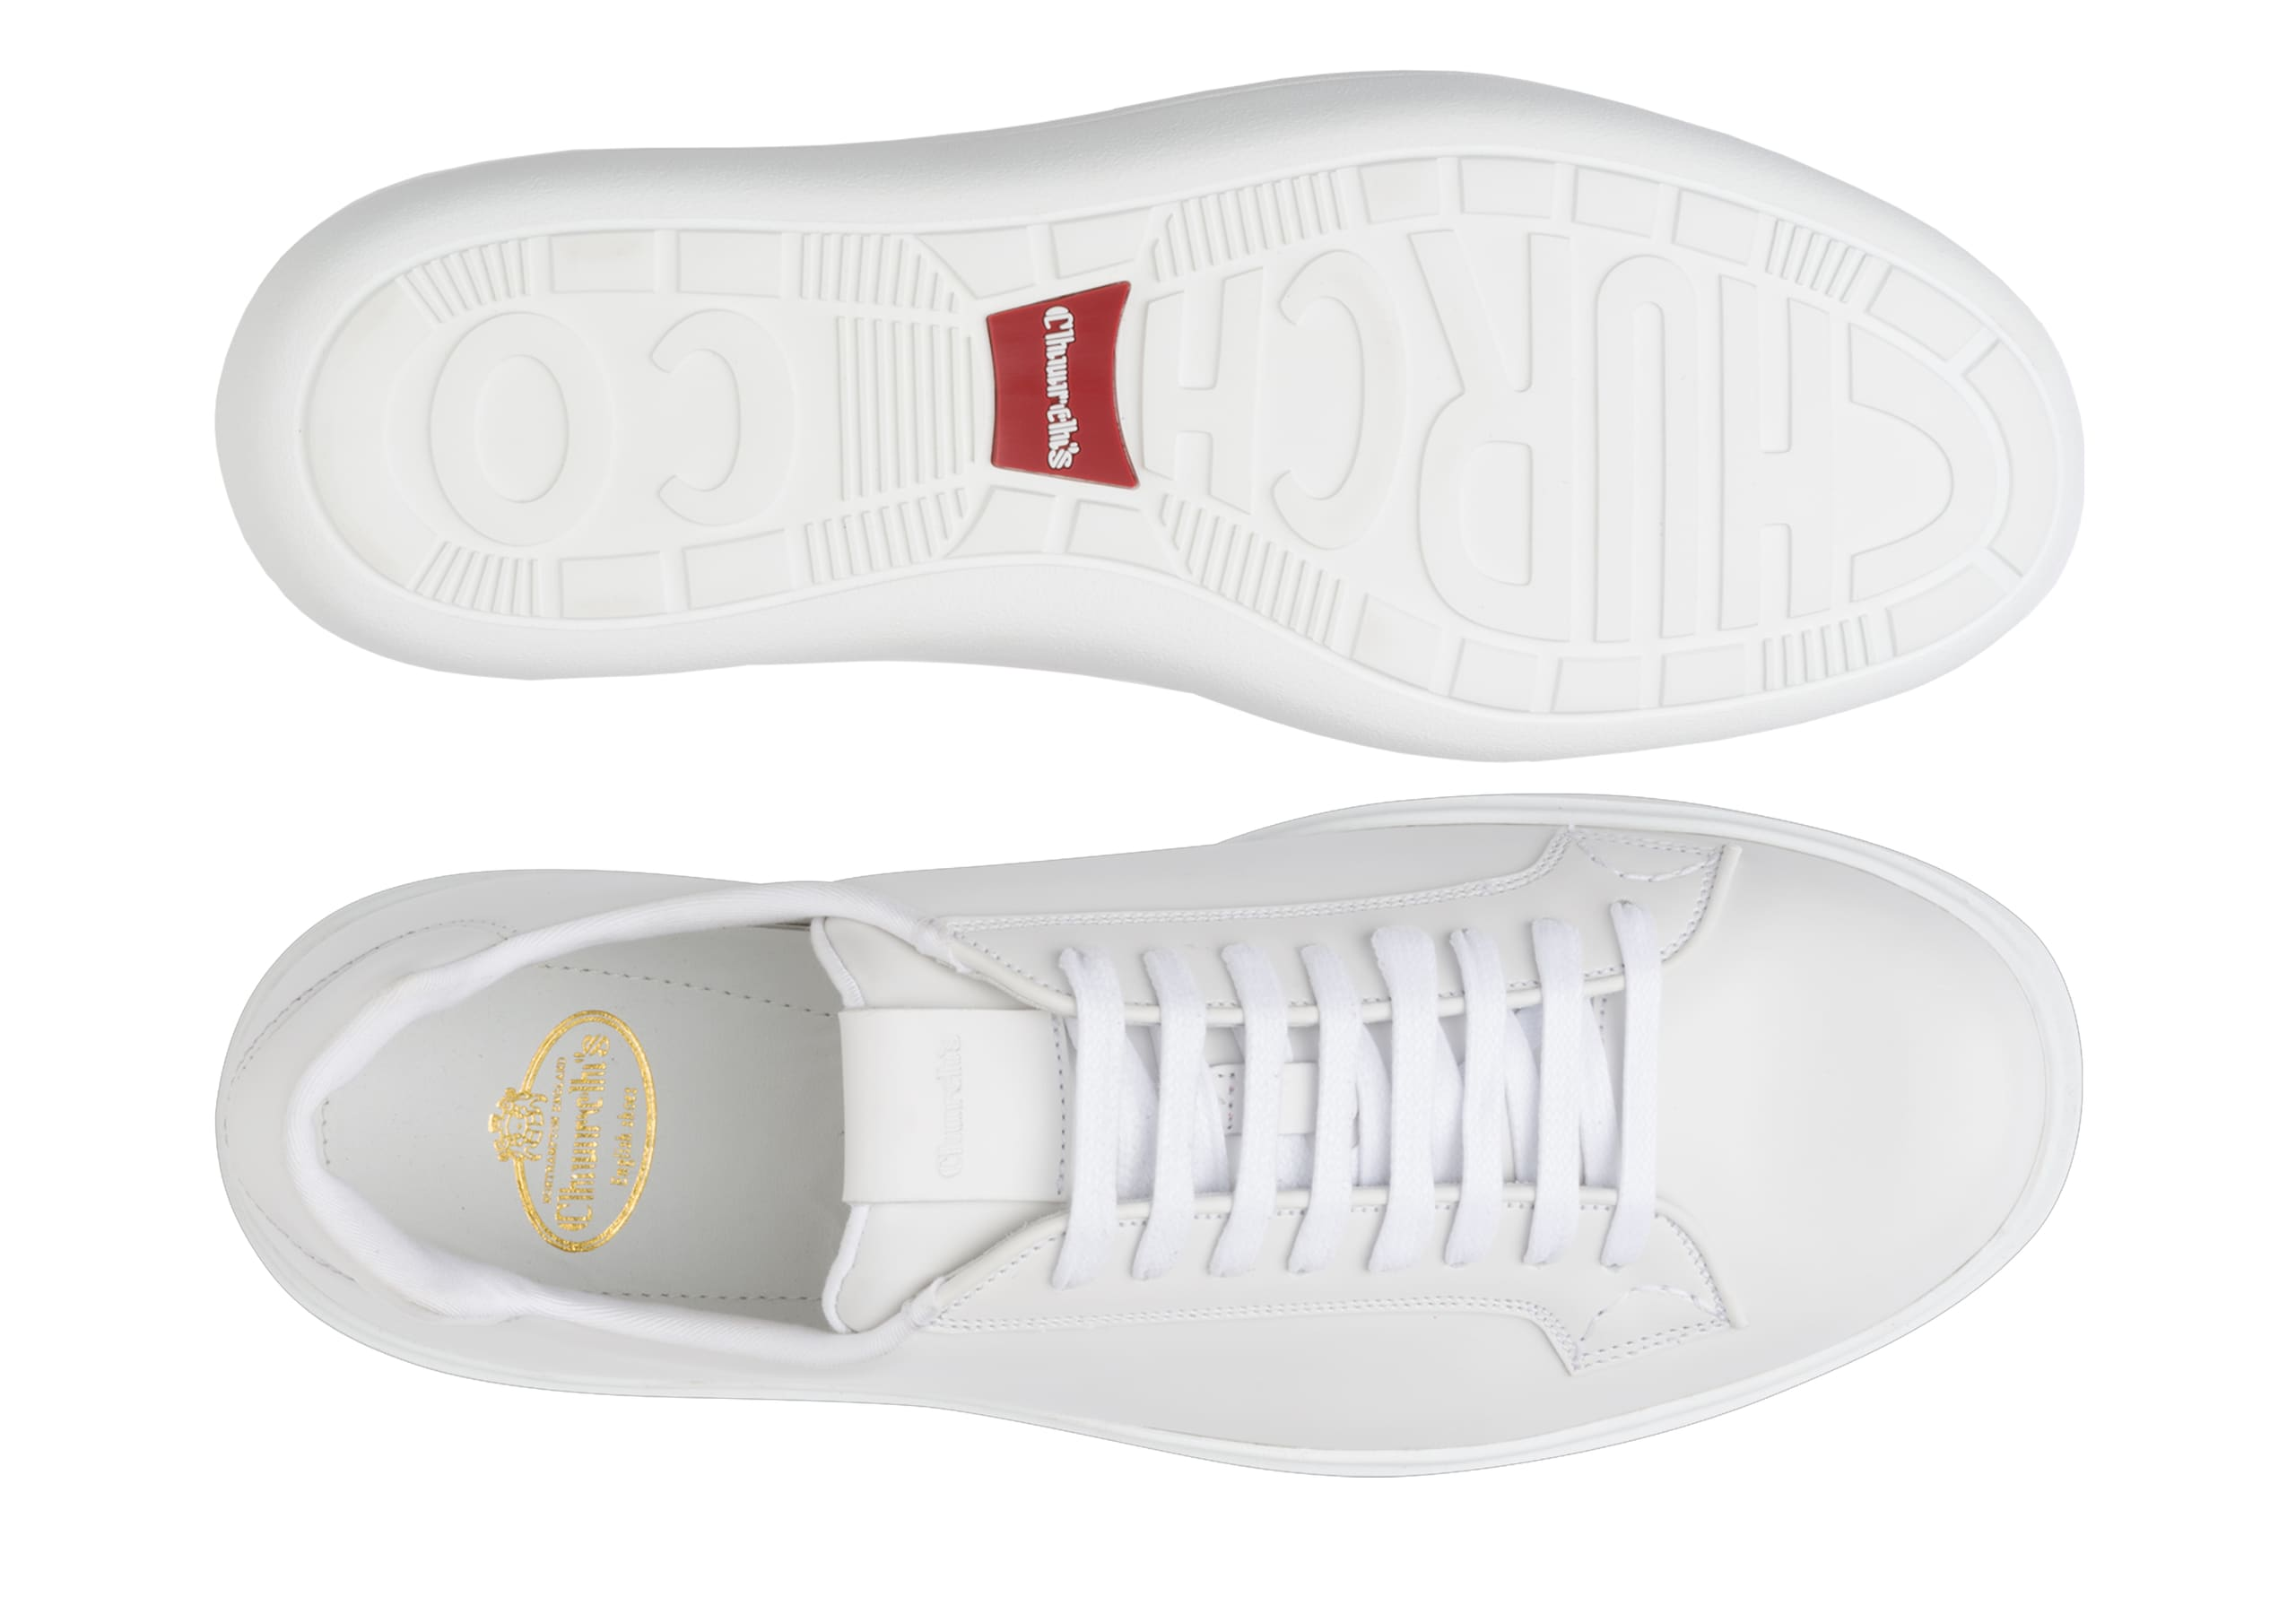 Boland Church's Sneaker Classica in Pelle di Vitello Bianco